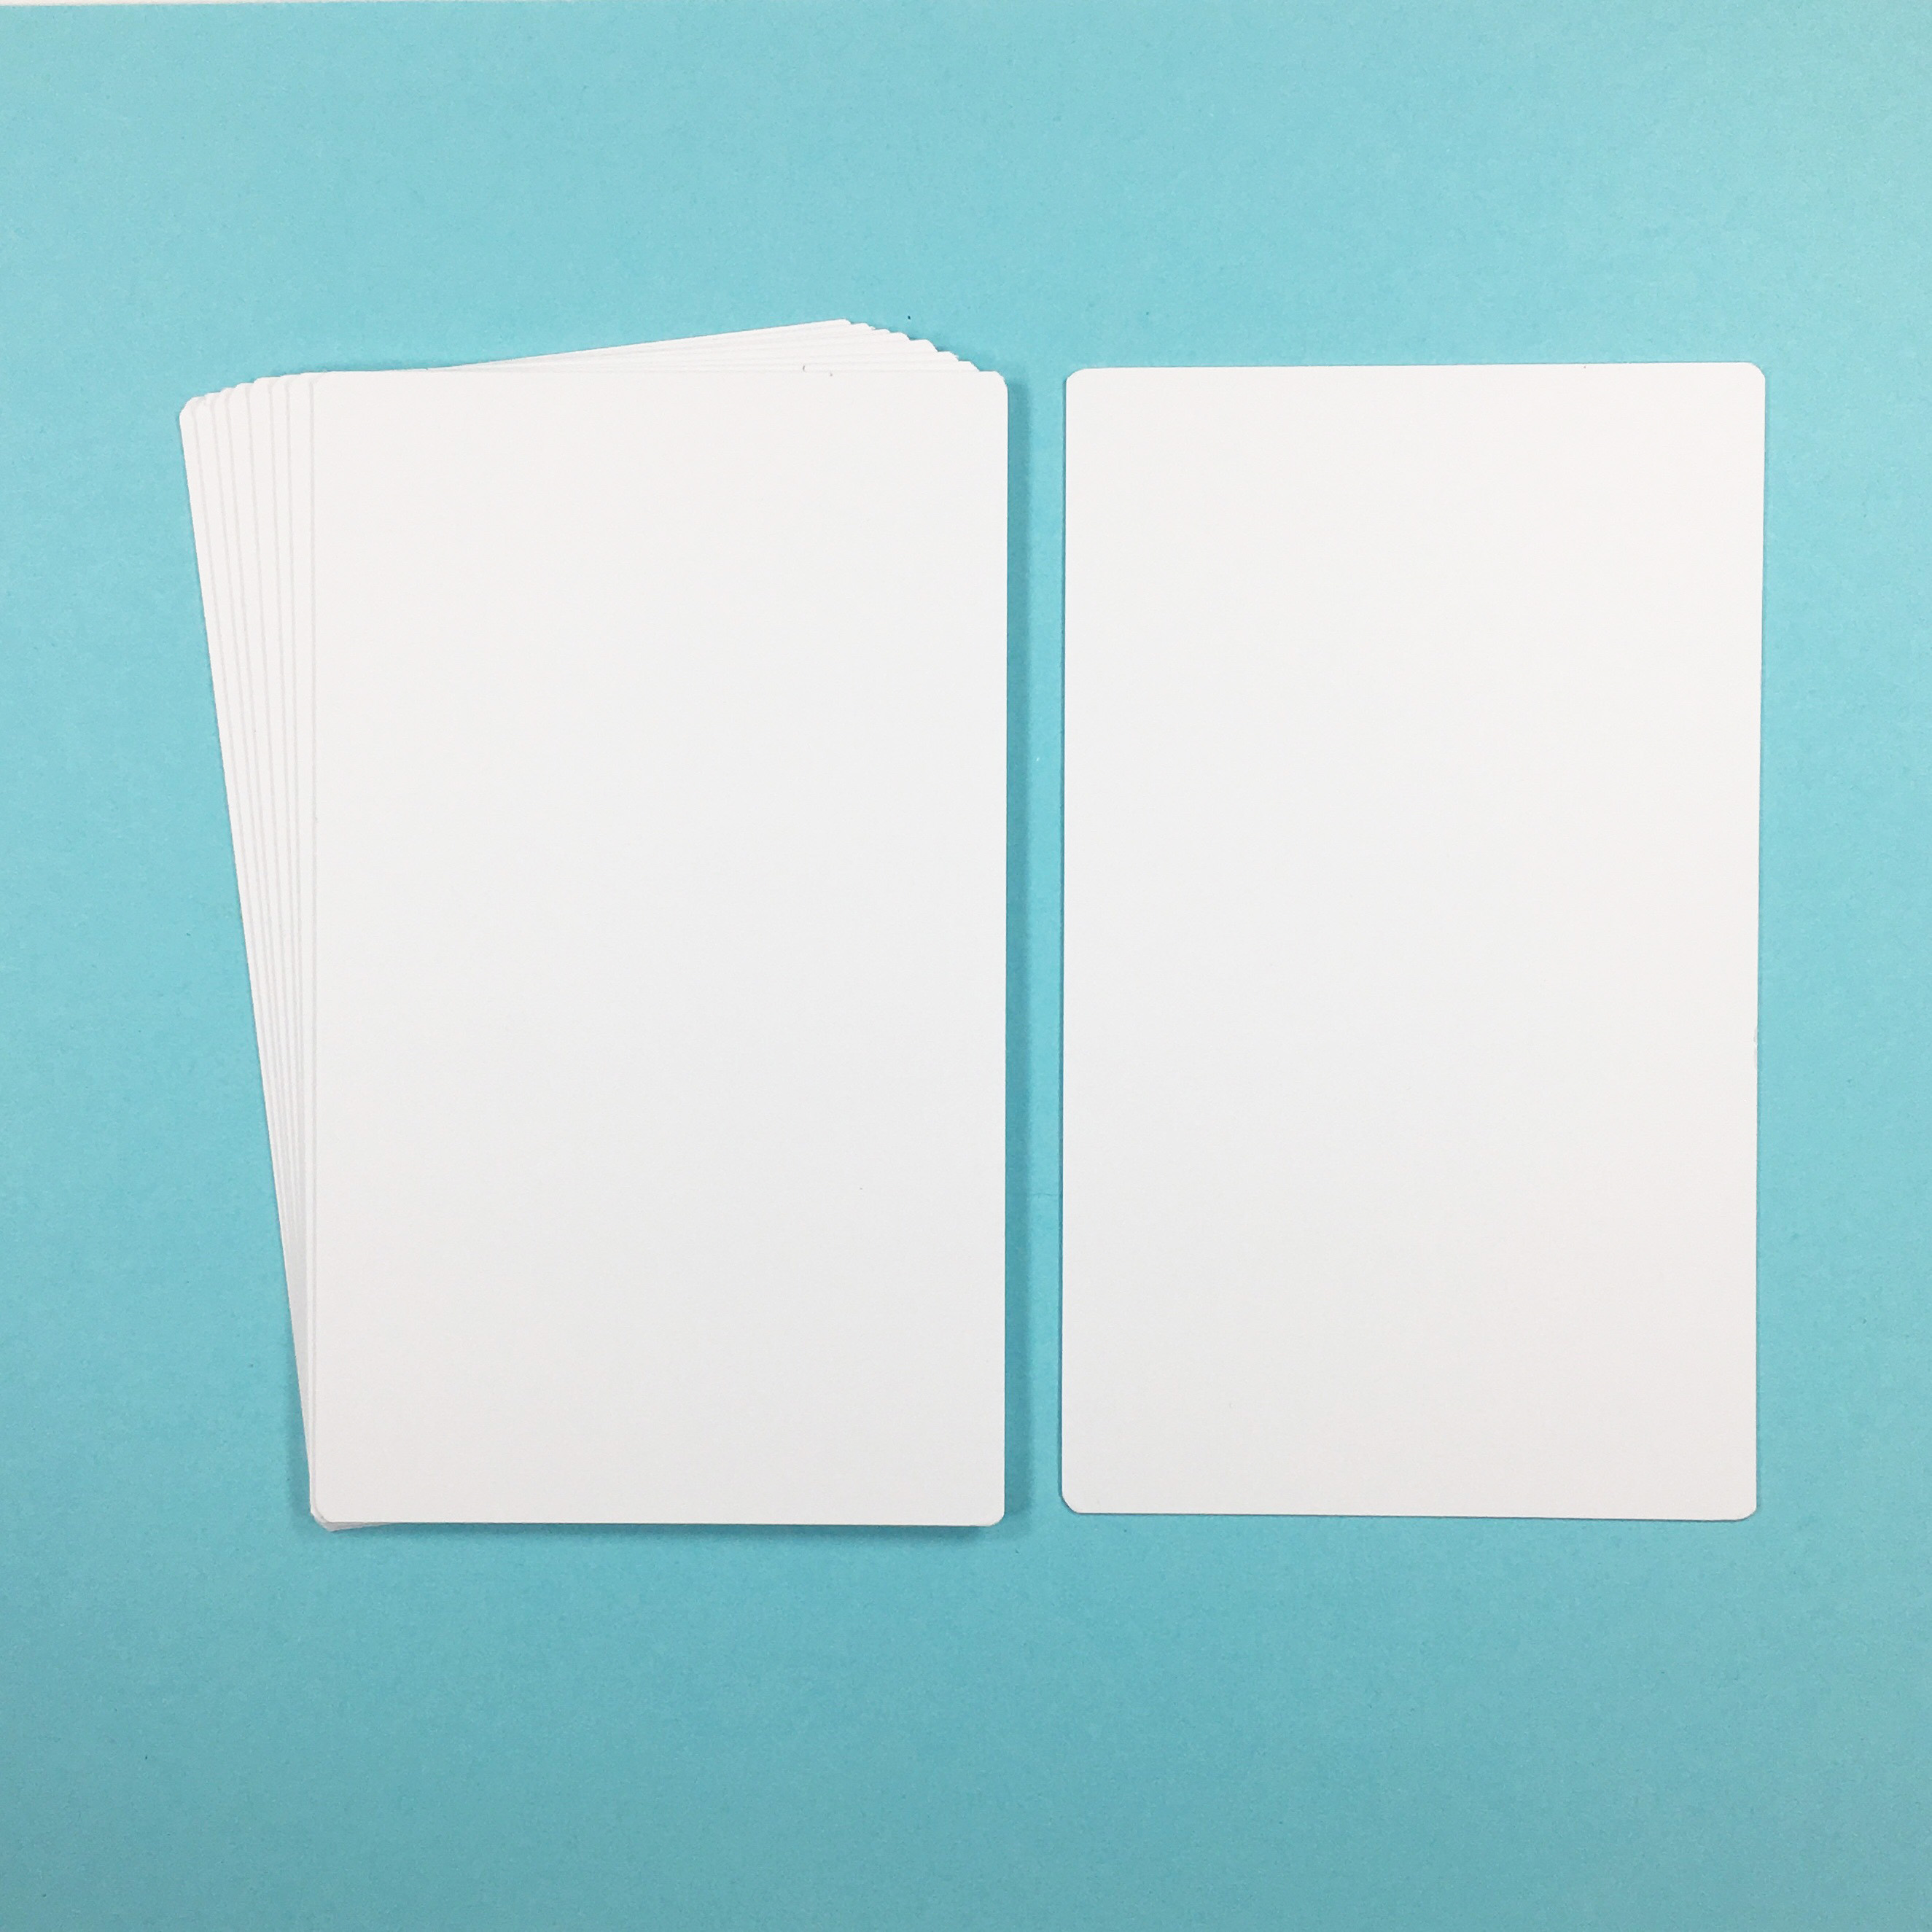 Printing On Index Cards: Print & Play Games